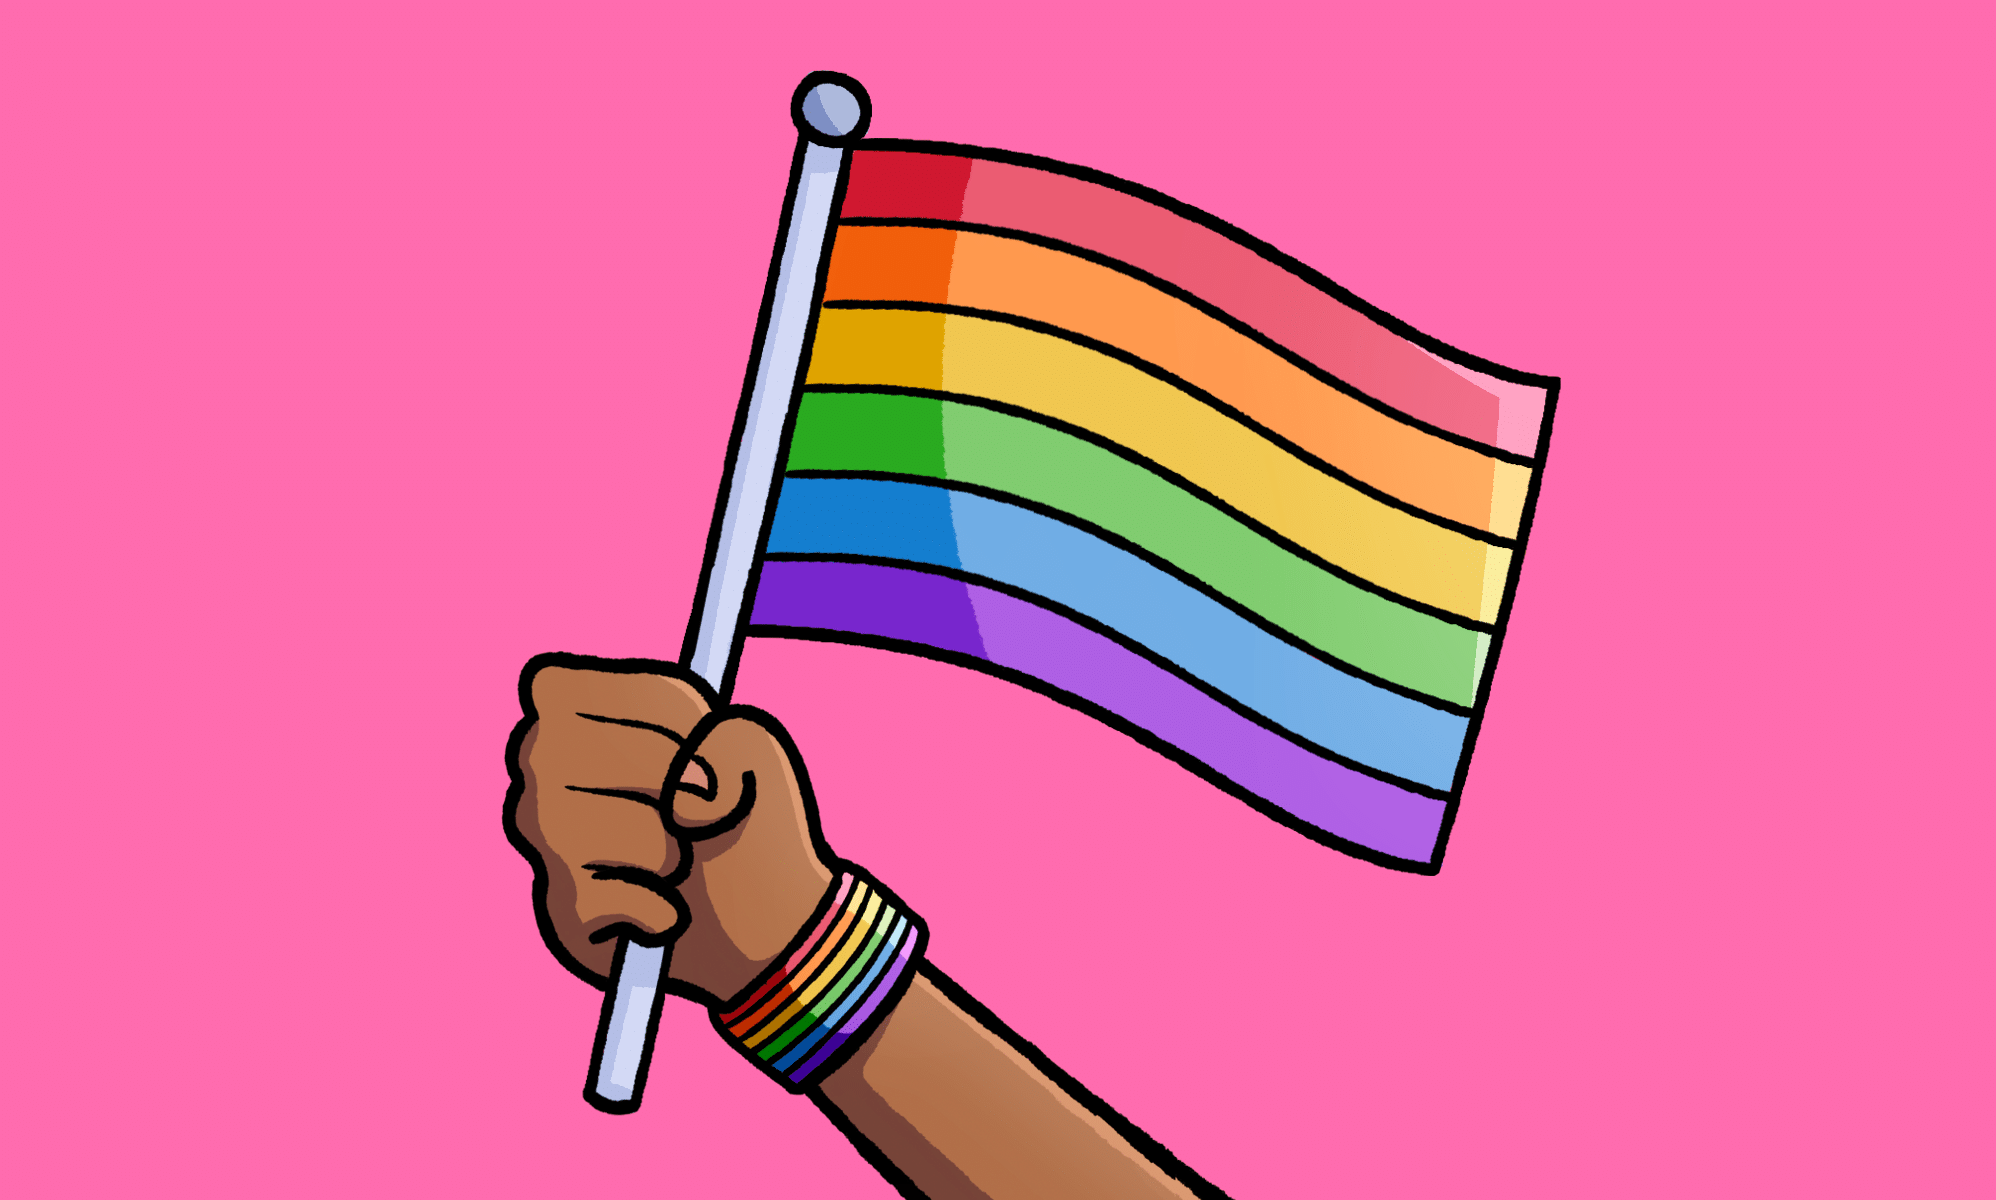 12 arrested in Tanzania for 'promoting homosexuality'